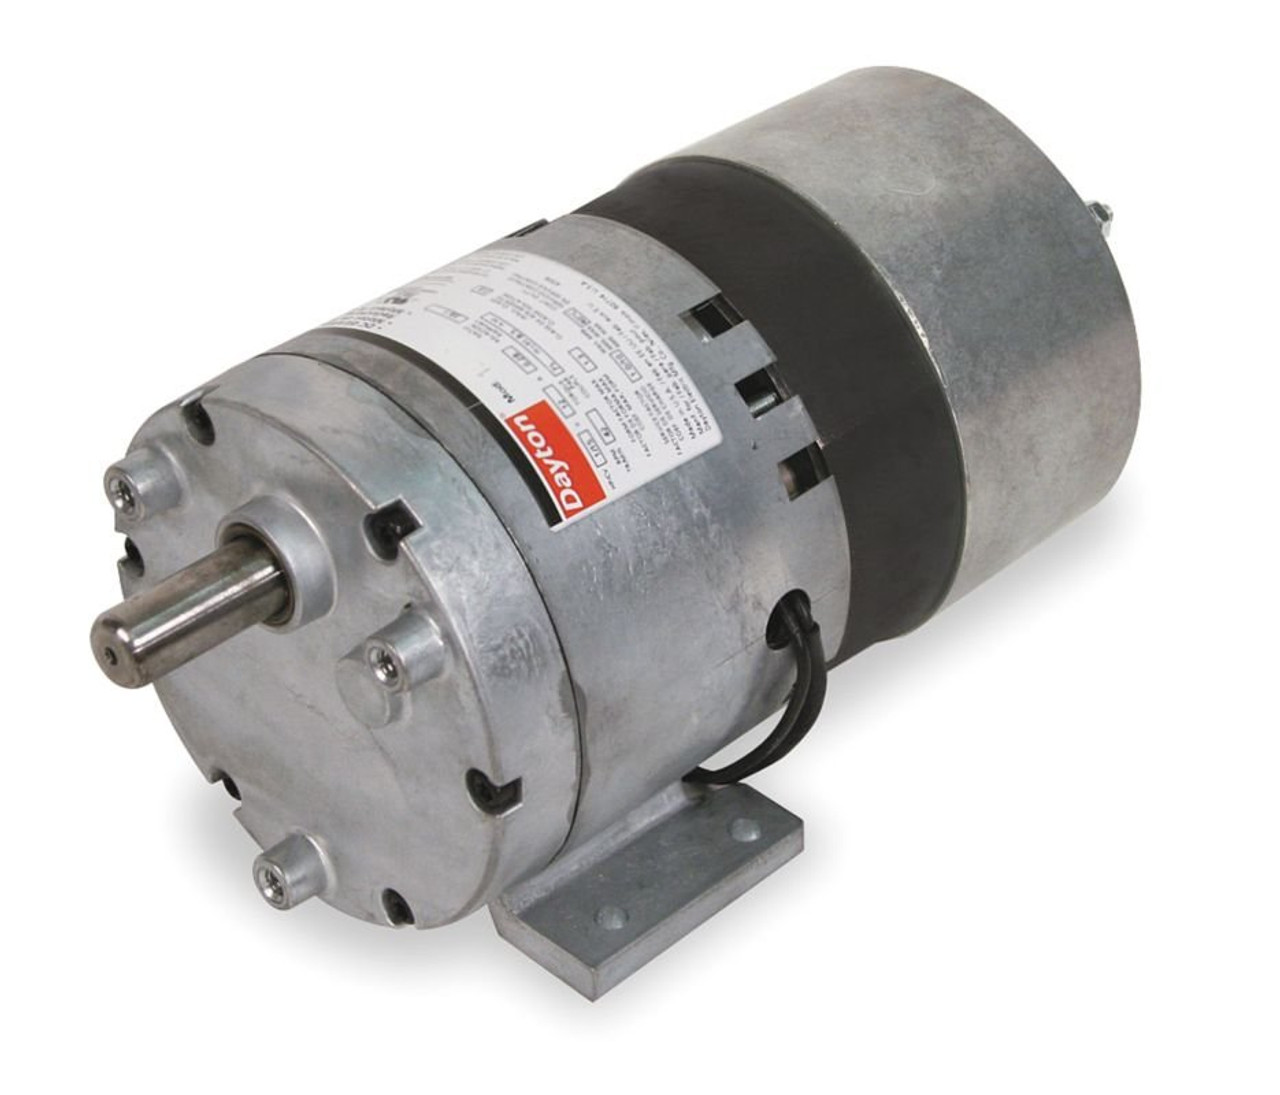 Dayton Model 1lpn7 Gear Motor 2 Rpm 1  10 Hp 115v  1l490